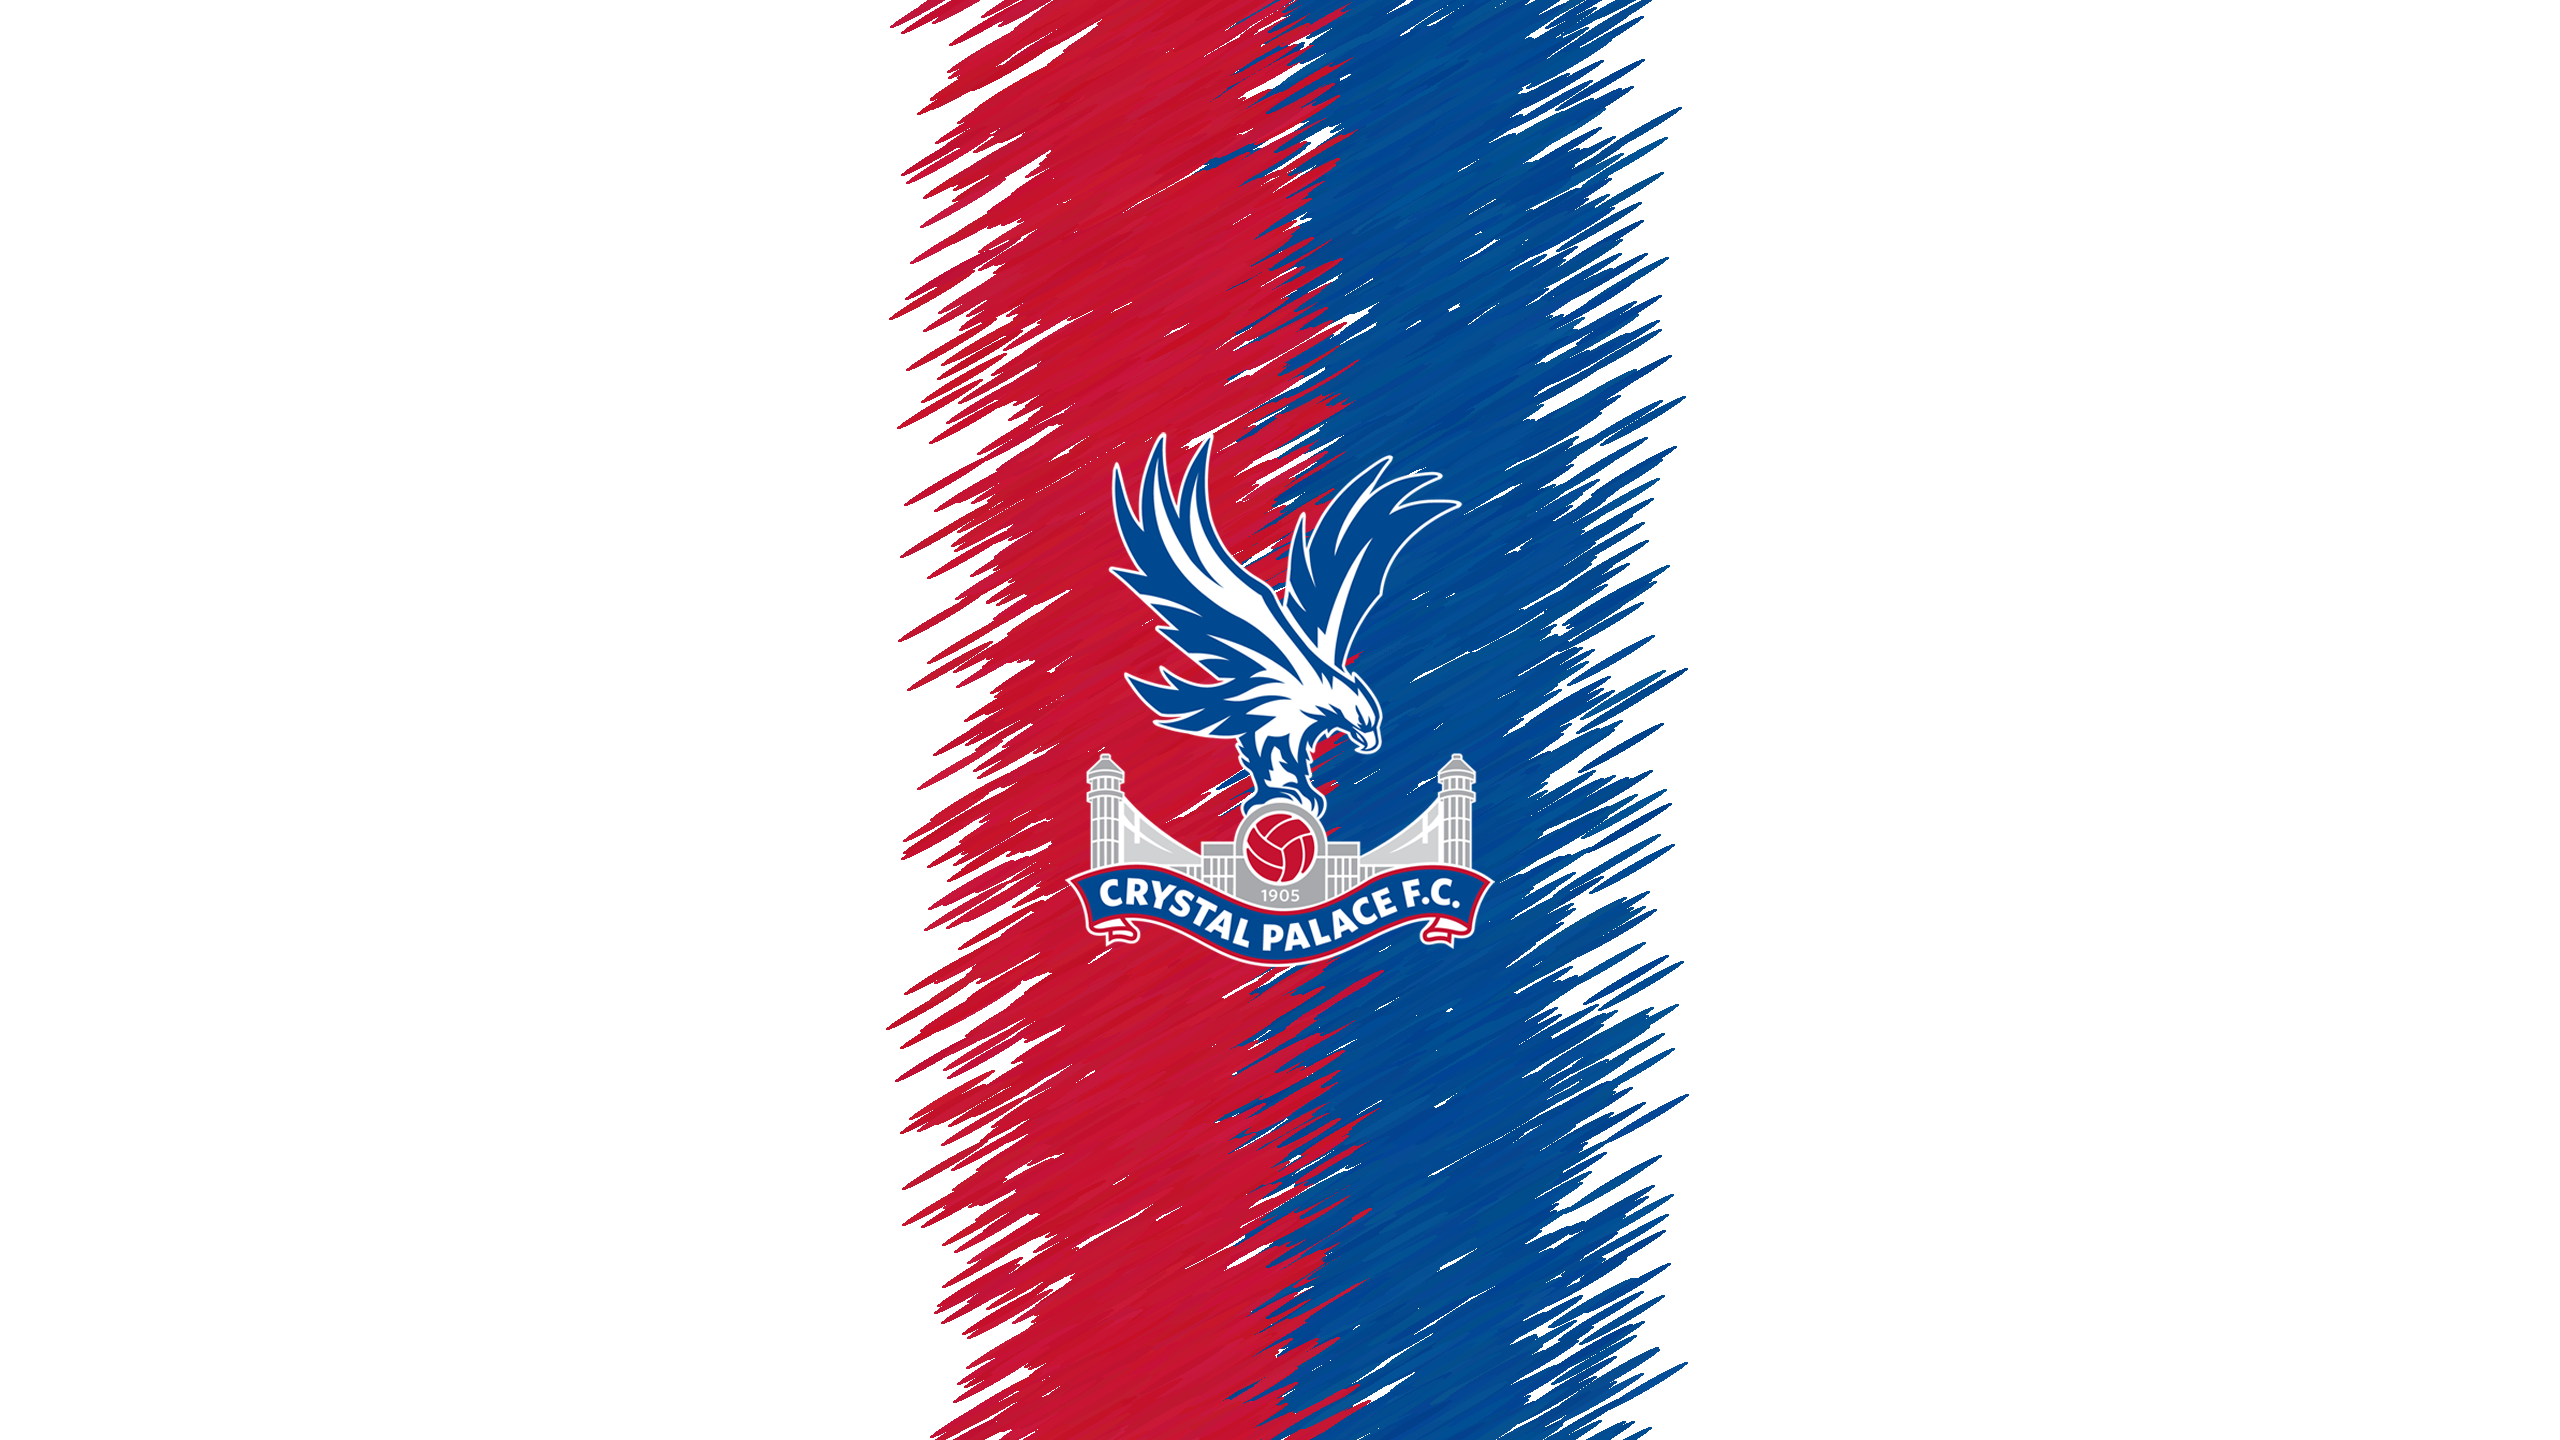 Crystal Palace FC (Away)